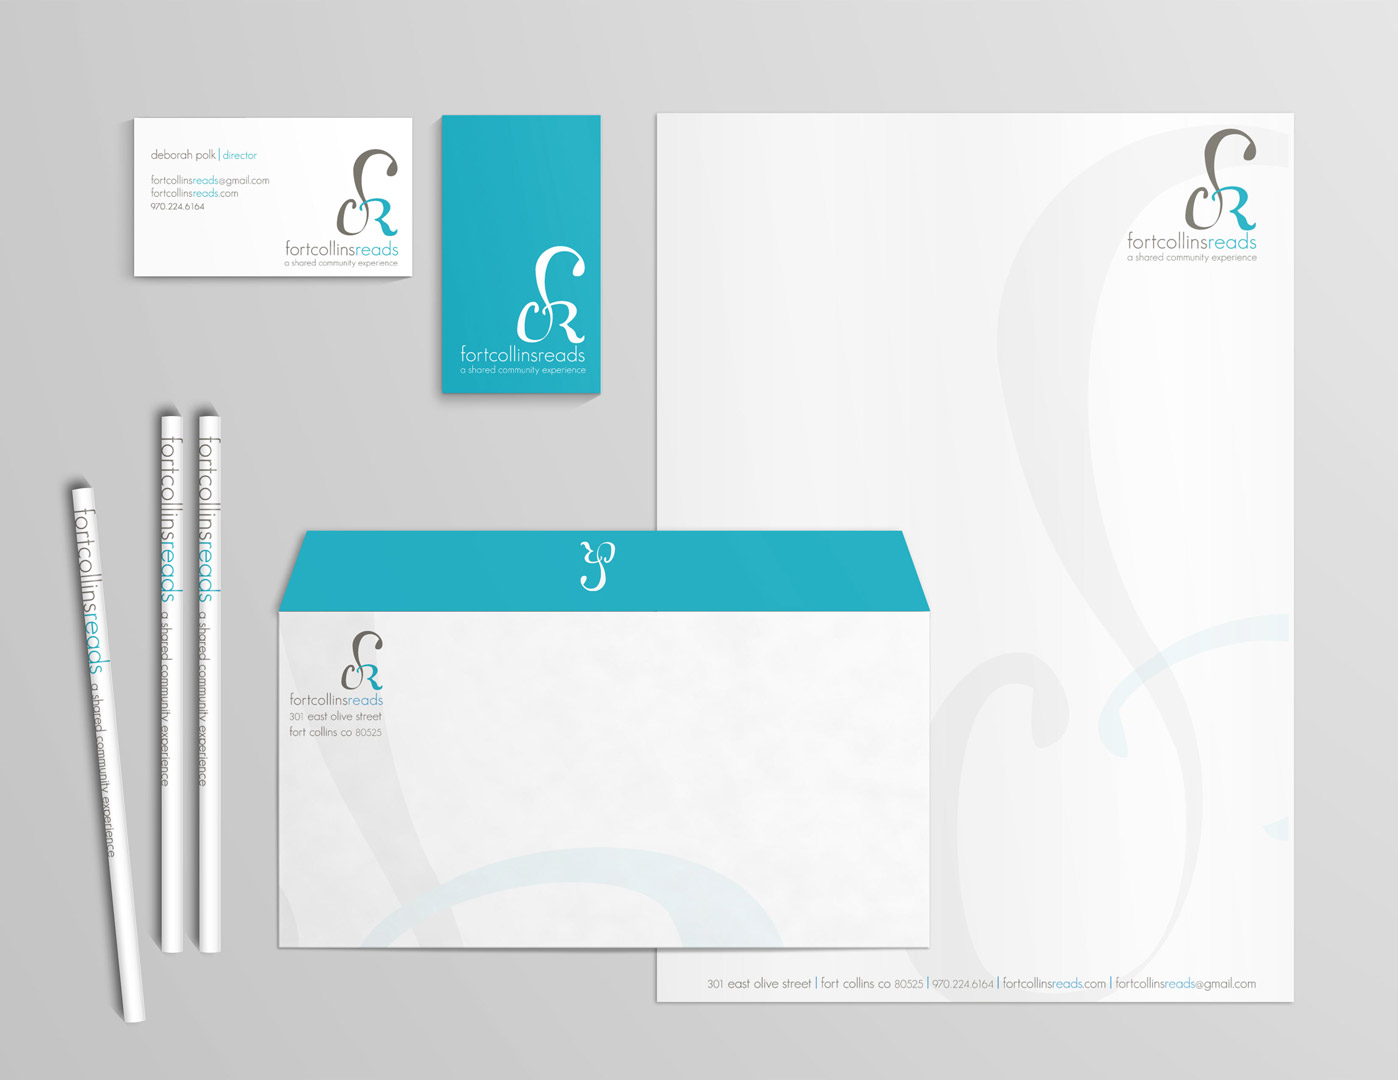 Mockup of identity materials, including logo, business cards, letterhead and envelope design.